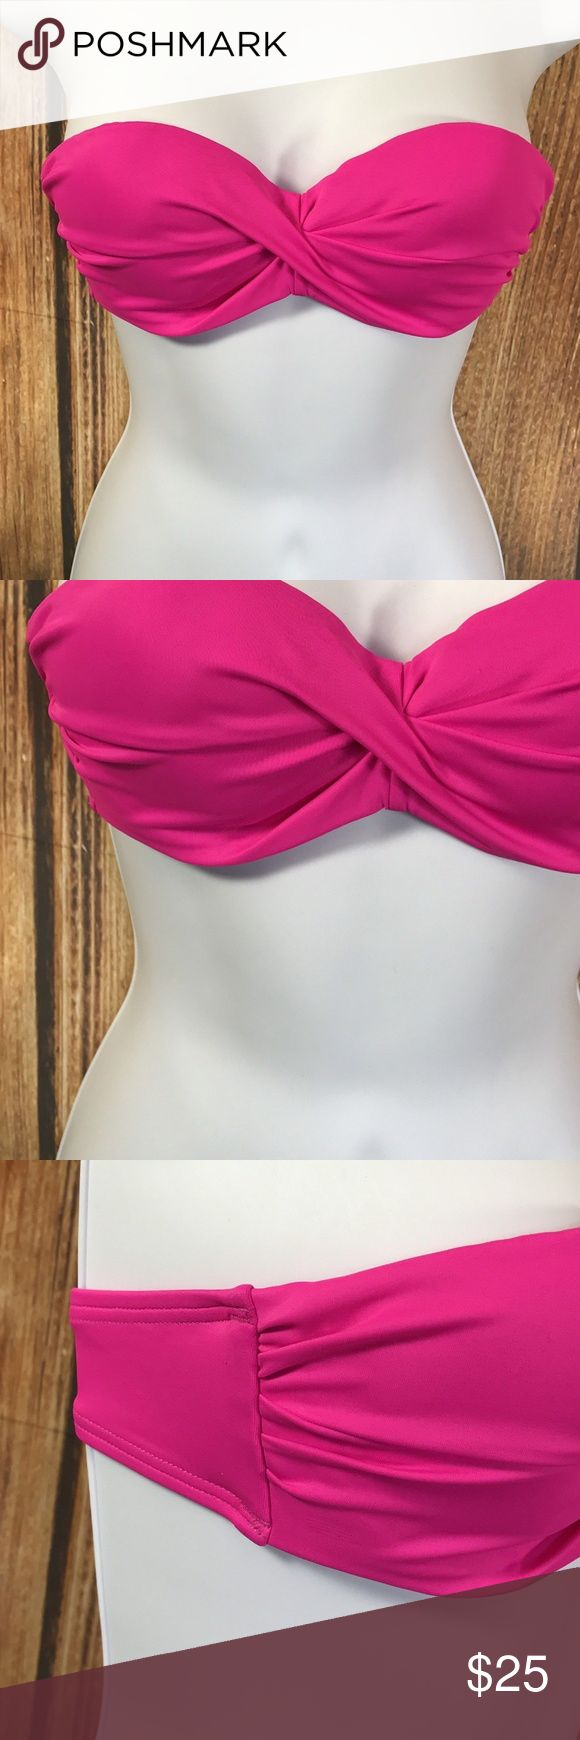 "Victorias Secret Swim The Knockout Bandeau Push Up Victorias Secret Swim The Knockout Bandeau Push Up Hot Pink Bikini Top 32A  Victoria's Secret Swimwear  The Flirt Bandeau Top  Padded  Underwire  Back hook at mid back strap  Hot Pink  NO NECK STRAP  Size 32A  New without tags  Our Victoria's Secret items are overstocks or customer returns, most are new without tags, some items are ""new with retail tags"" and will be listed accordingly.  Per the VS resale policy, Victoria's Secret brand…"